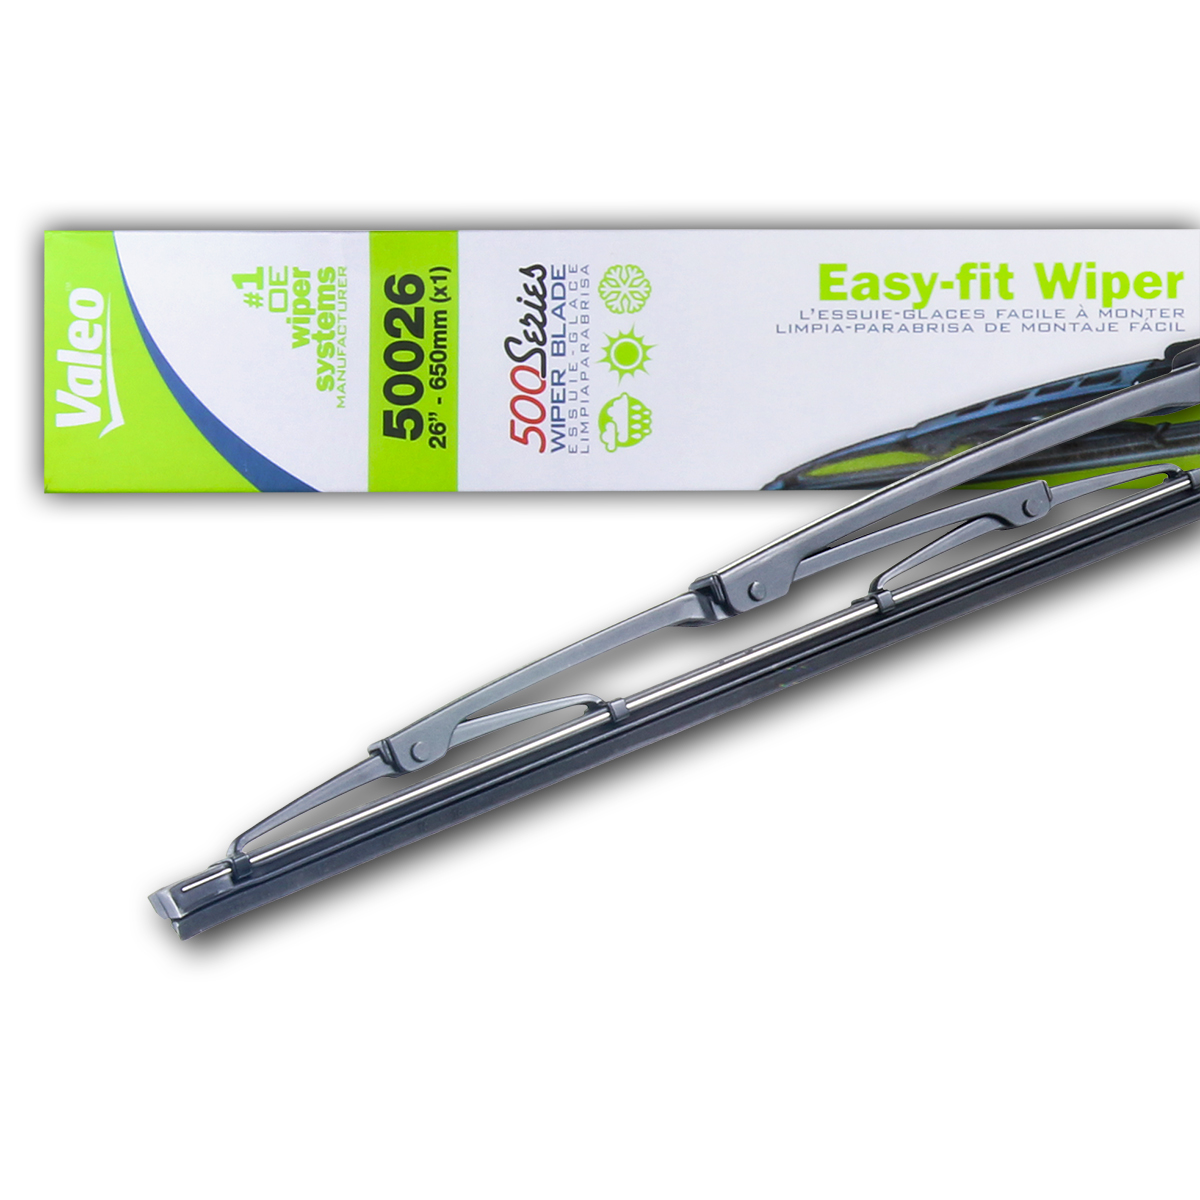 Mitsubishi Galant Windshield Wipers